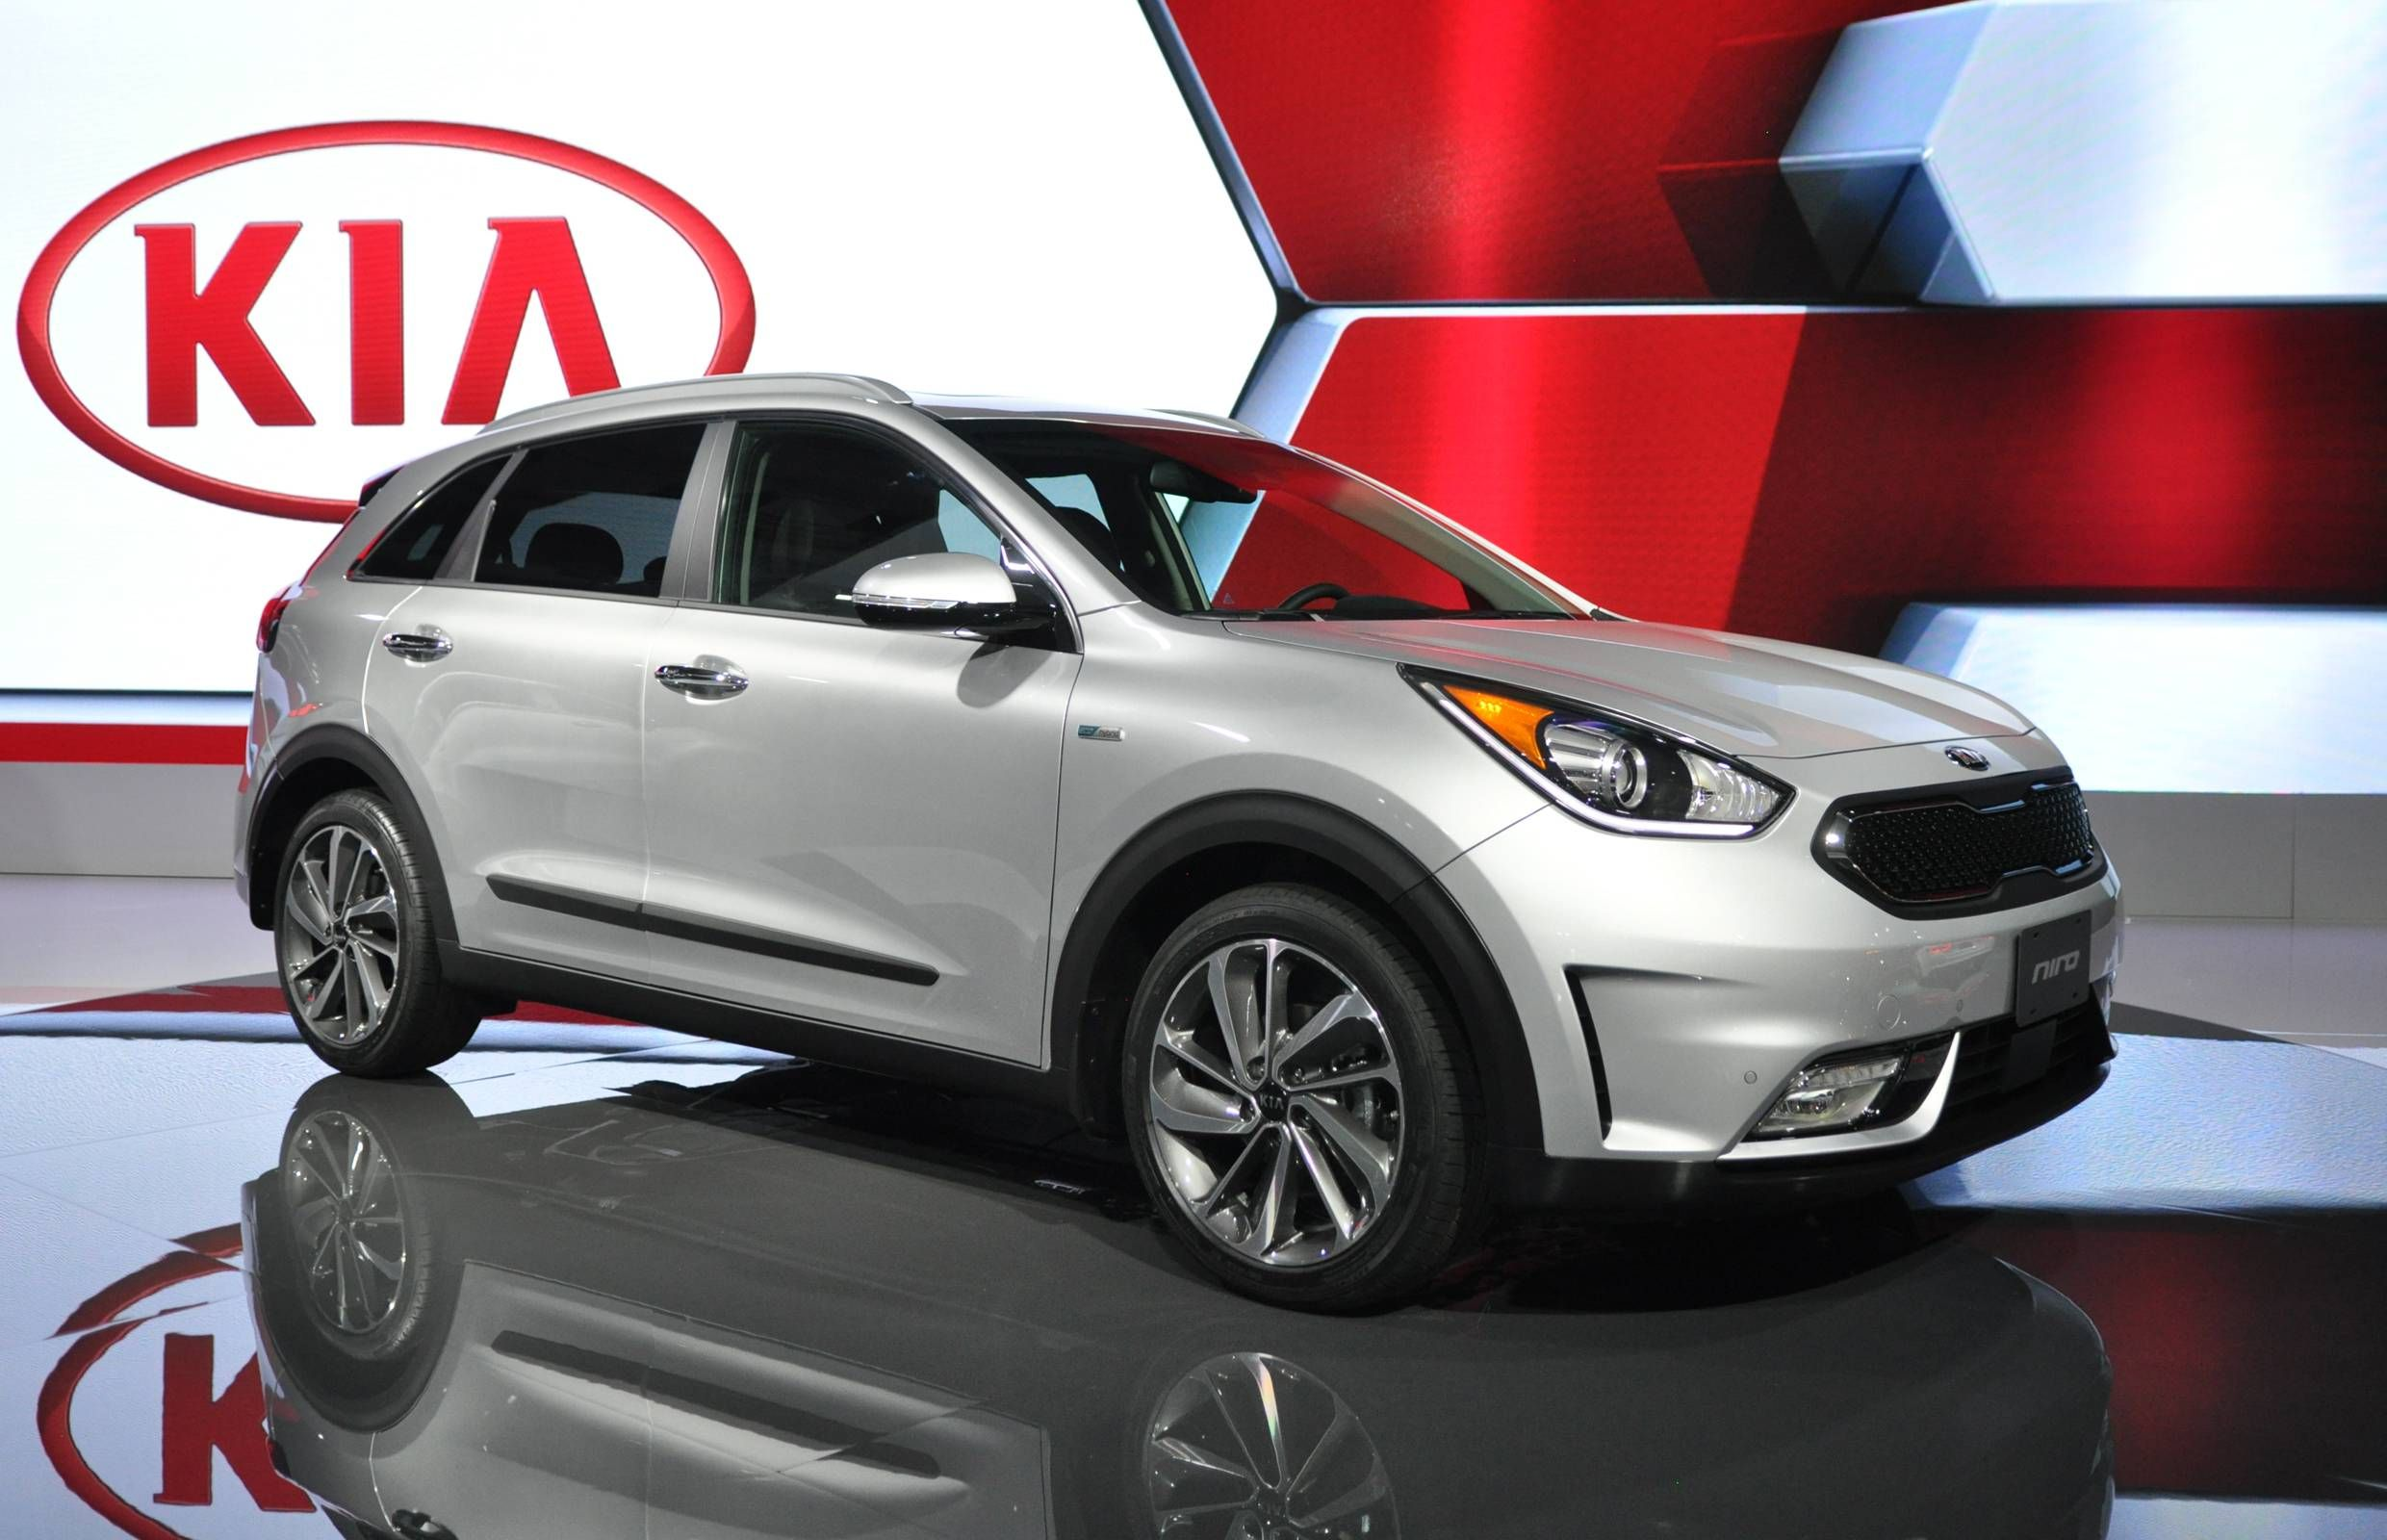 Cuv Car Kia Unveils All New Niro Hybrid Cuv At Toronto Auto Show Cars